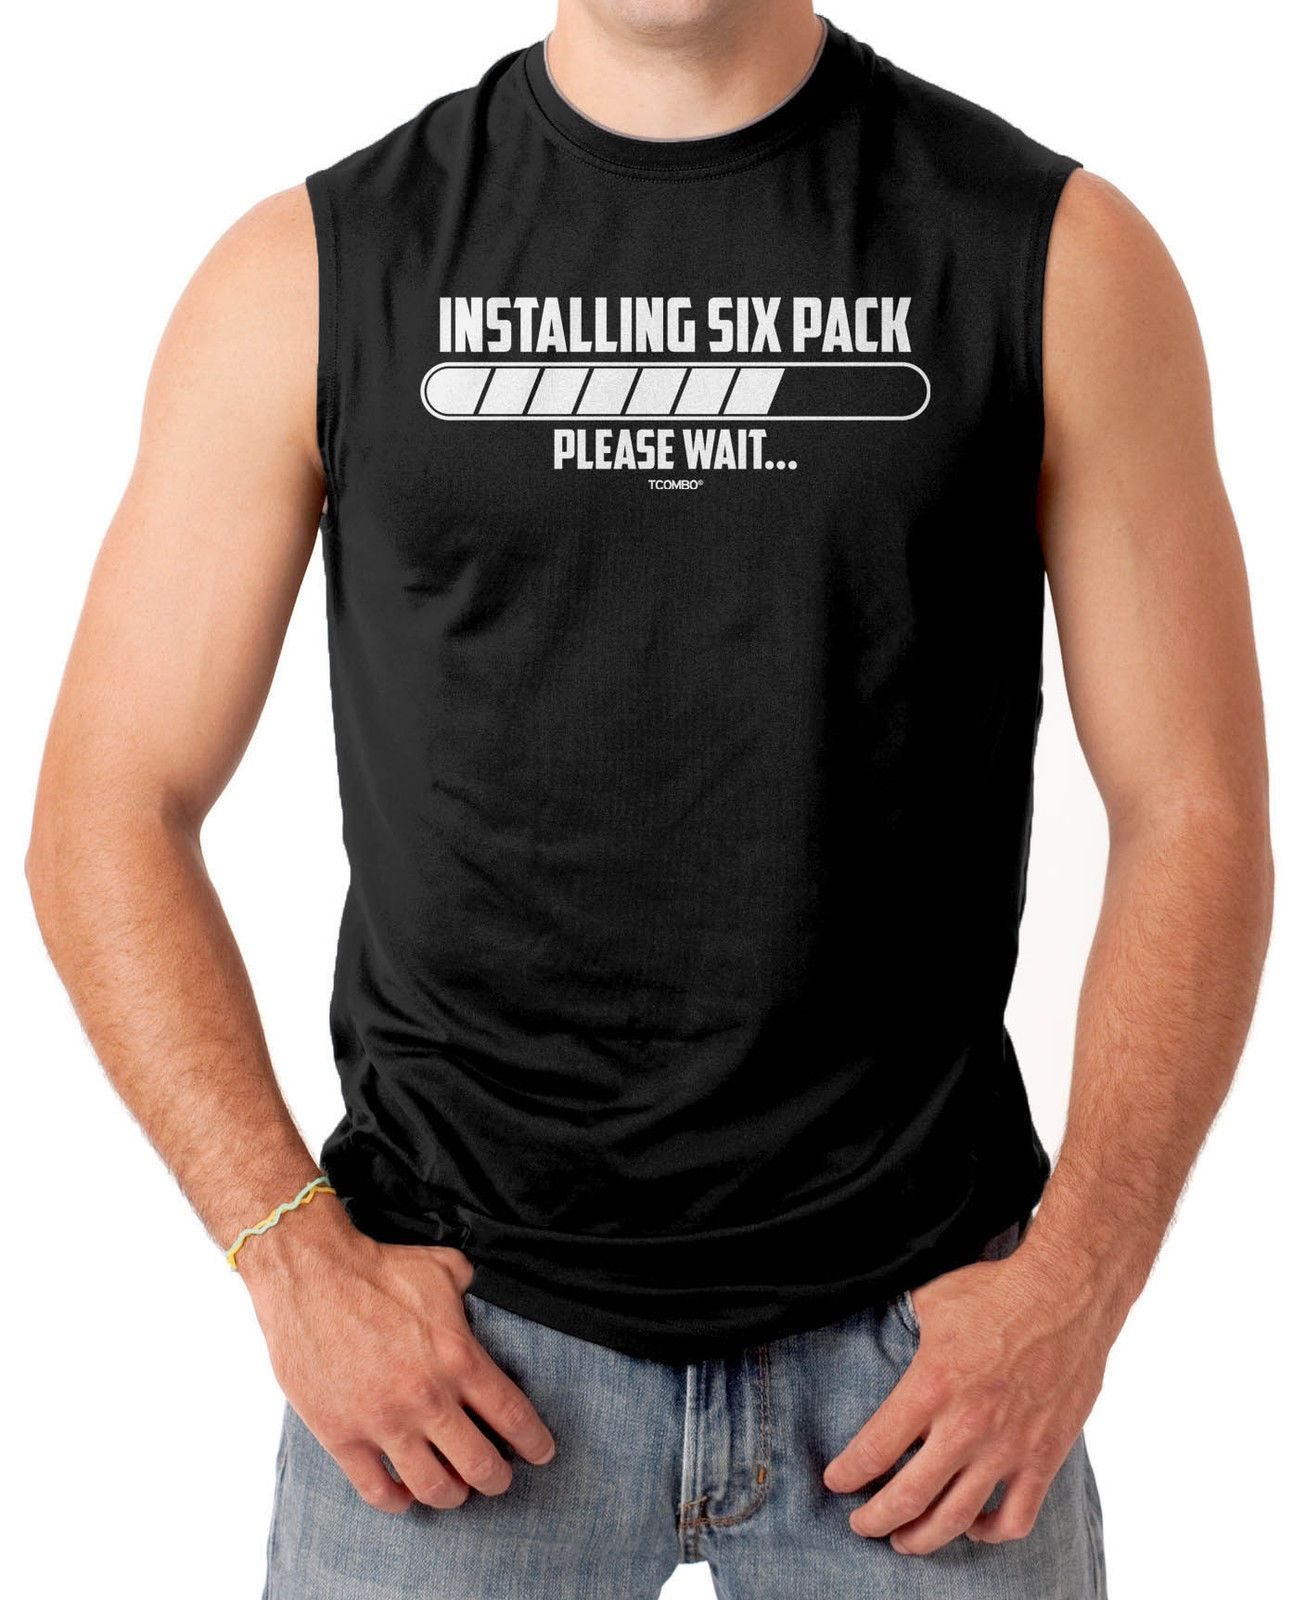 ba55903b Installing Six Pack...Please Wait - Gym Workout Men's Sleeveless T-Shirt